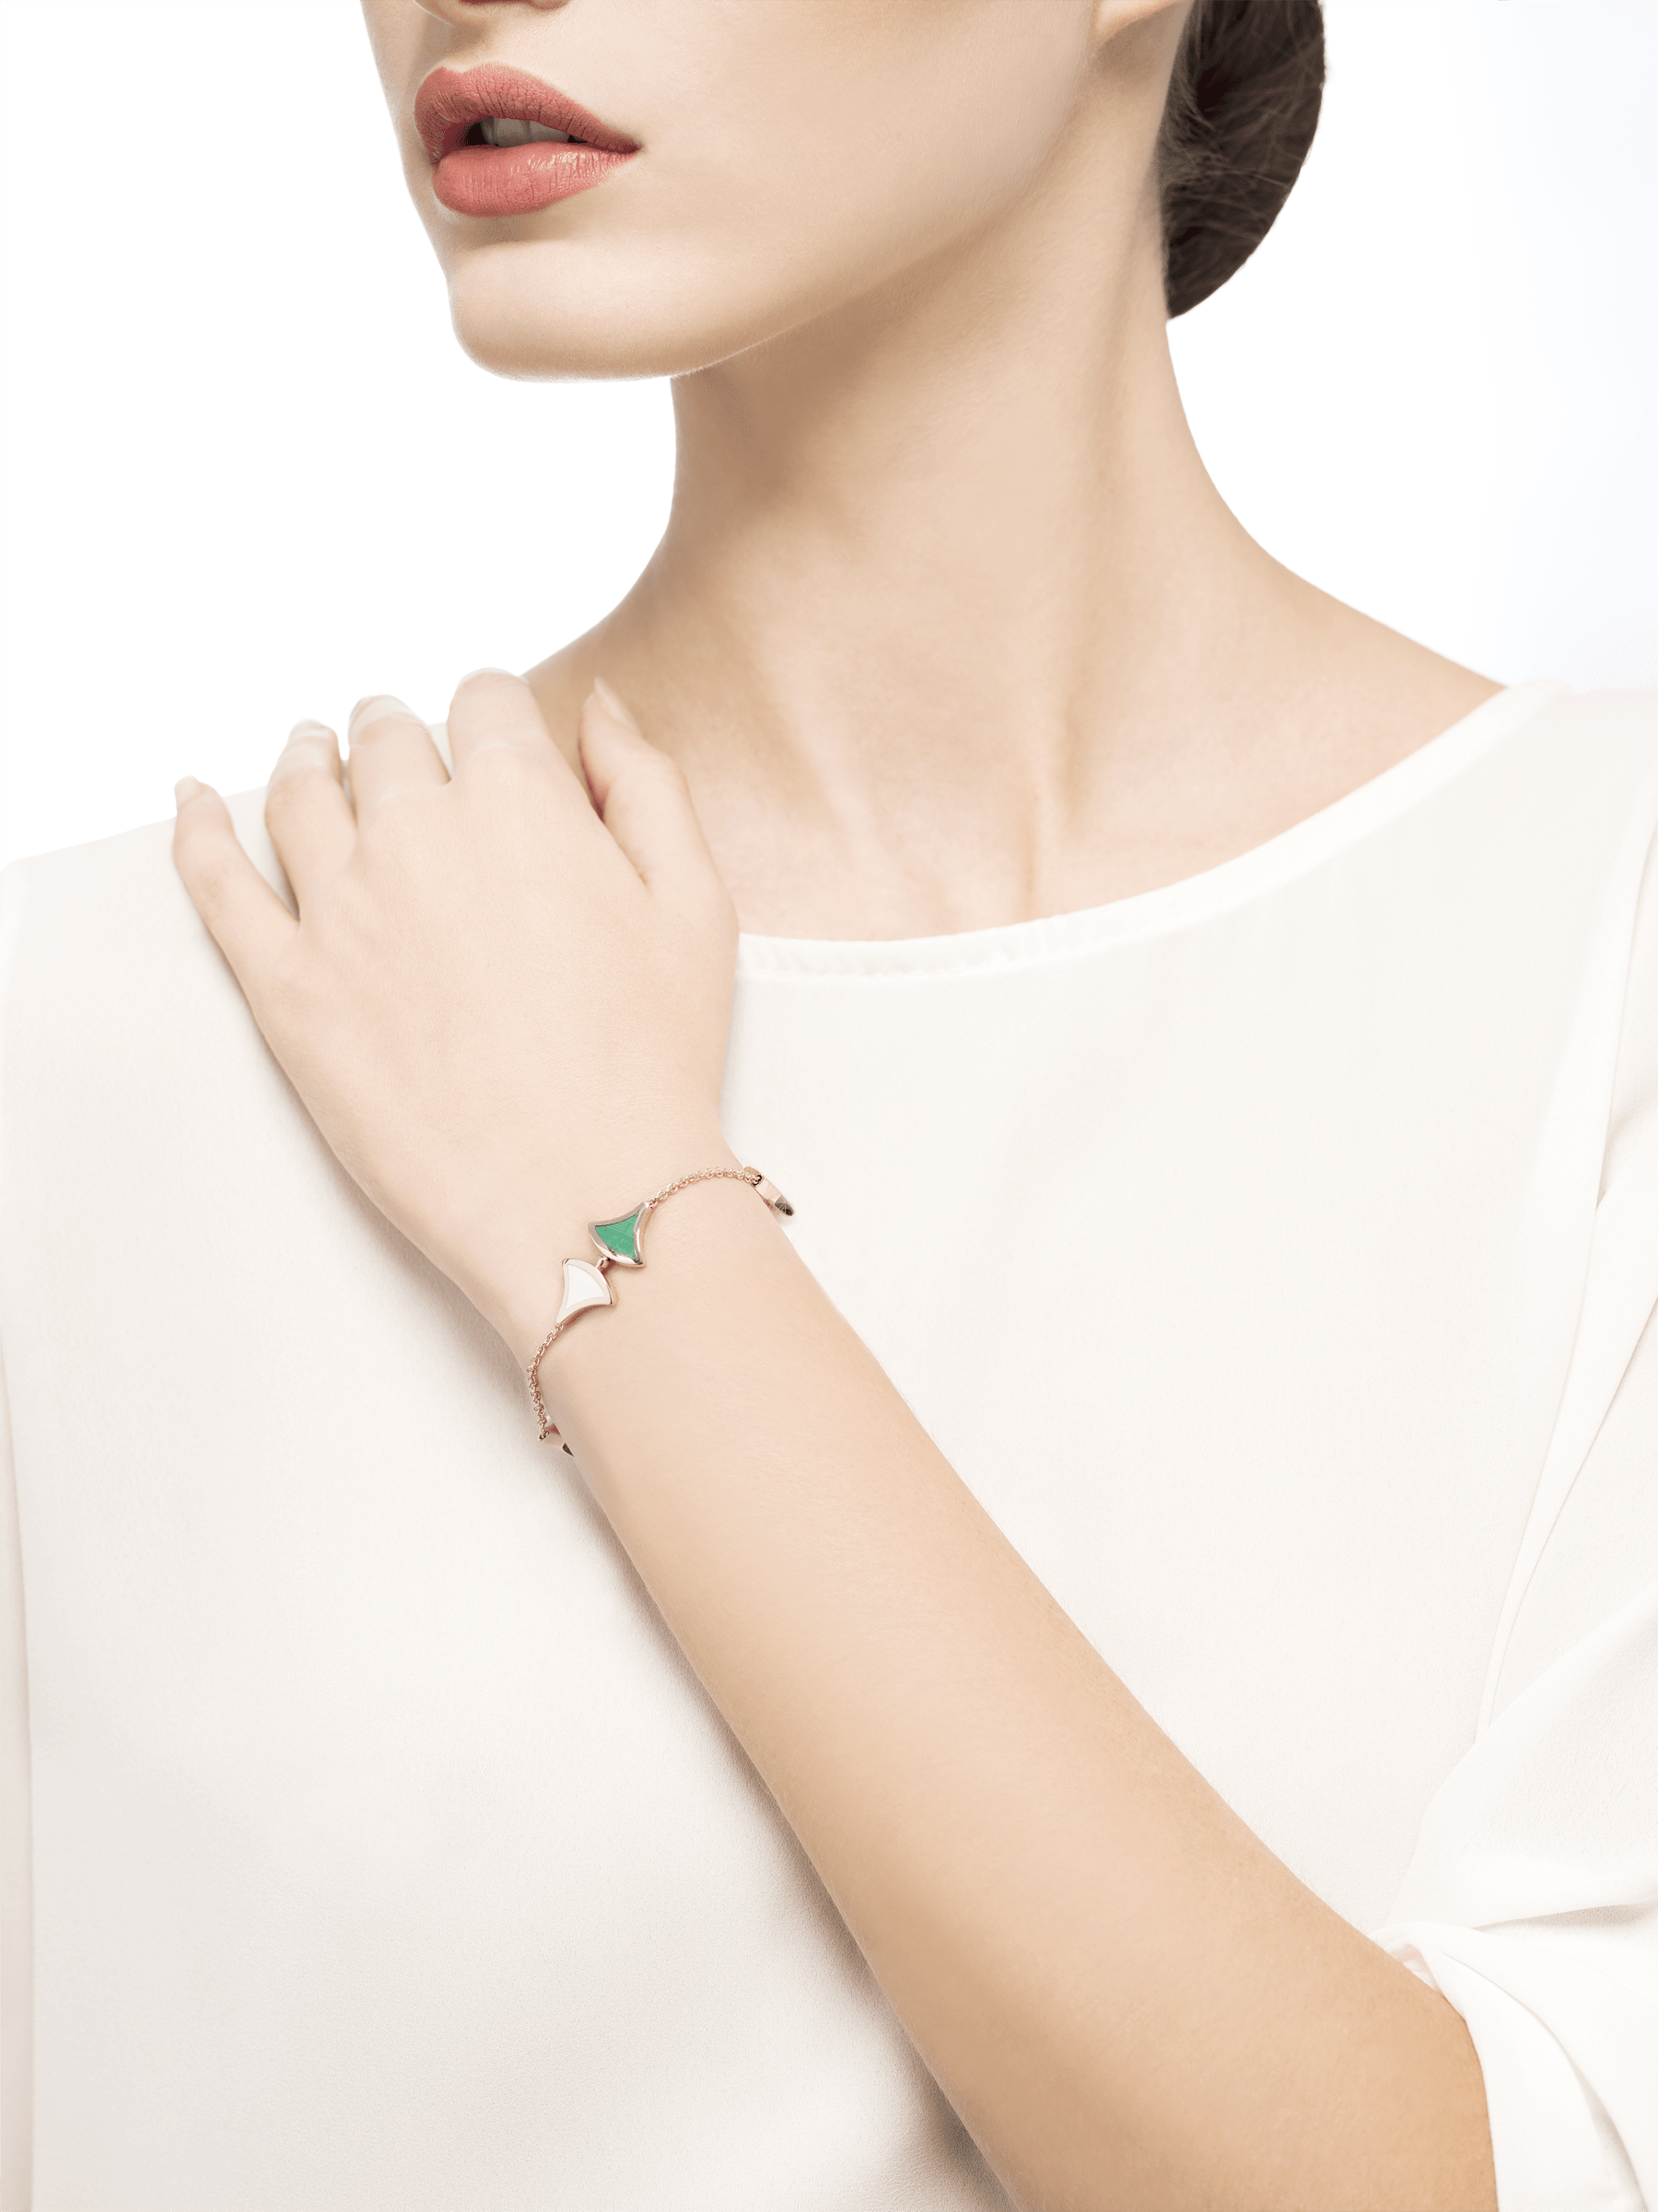 DIVAS' DREAM bracelet in 18 kt rose gold, set with malachite and mother-of-pearl elements. BR857497 image 3